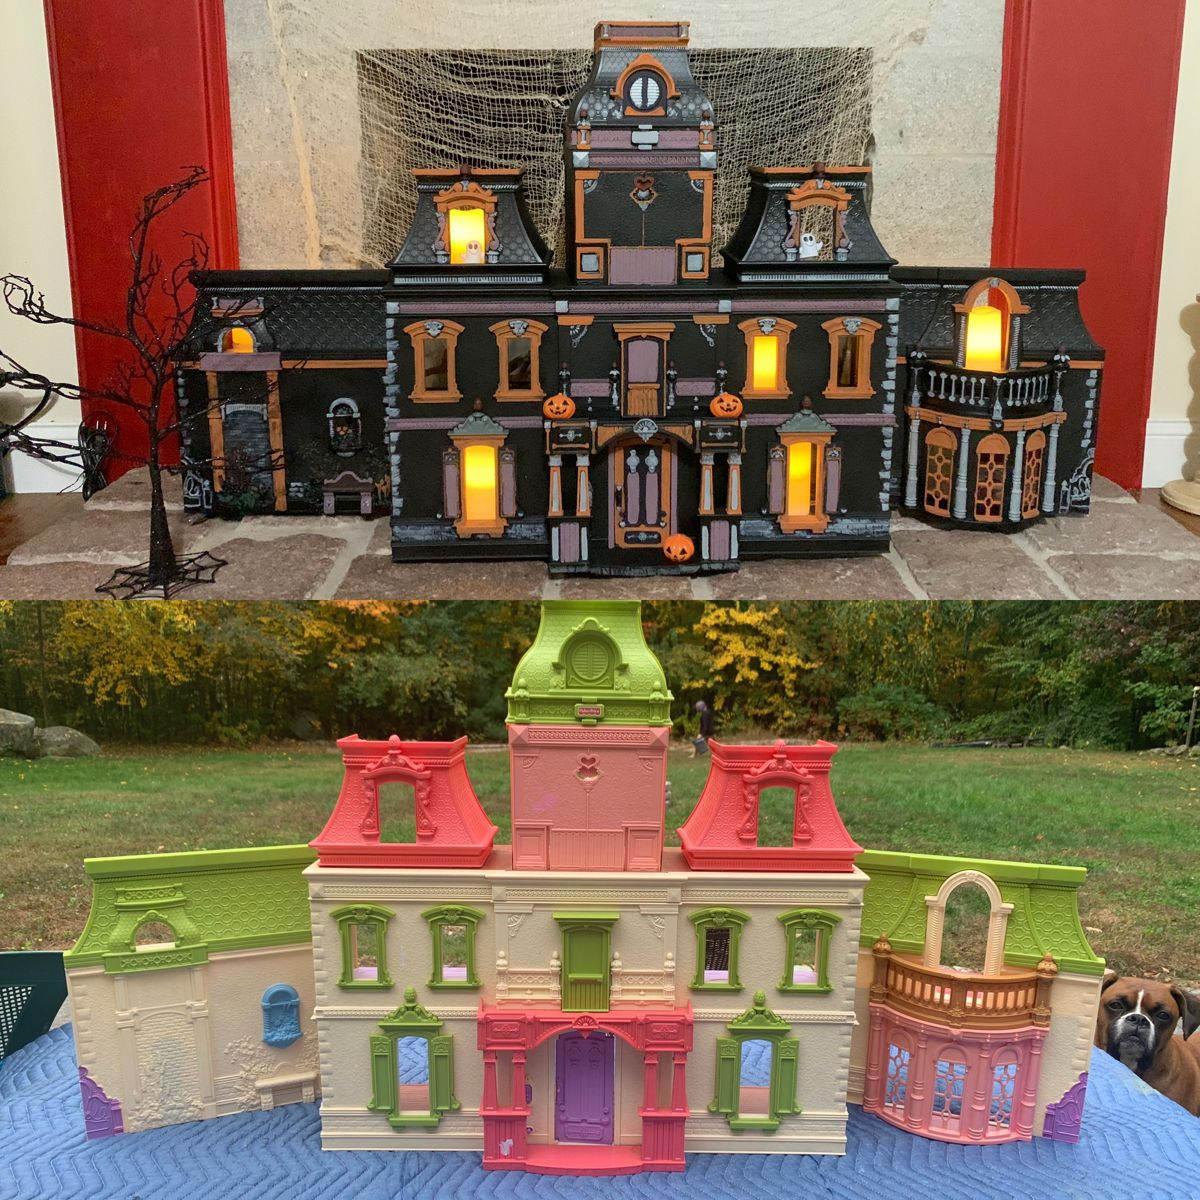 Growtopiahow to get rich fast 2021 insane profit! Halloween house in 2021   Halloween house, Fun diy halloween decorations, Diy halloween doll